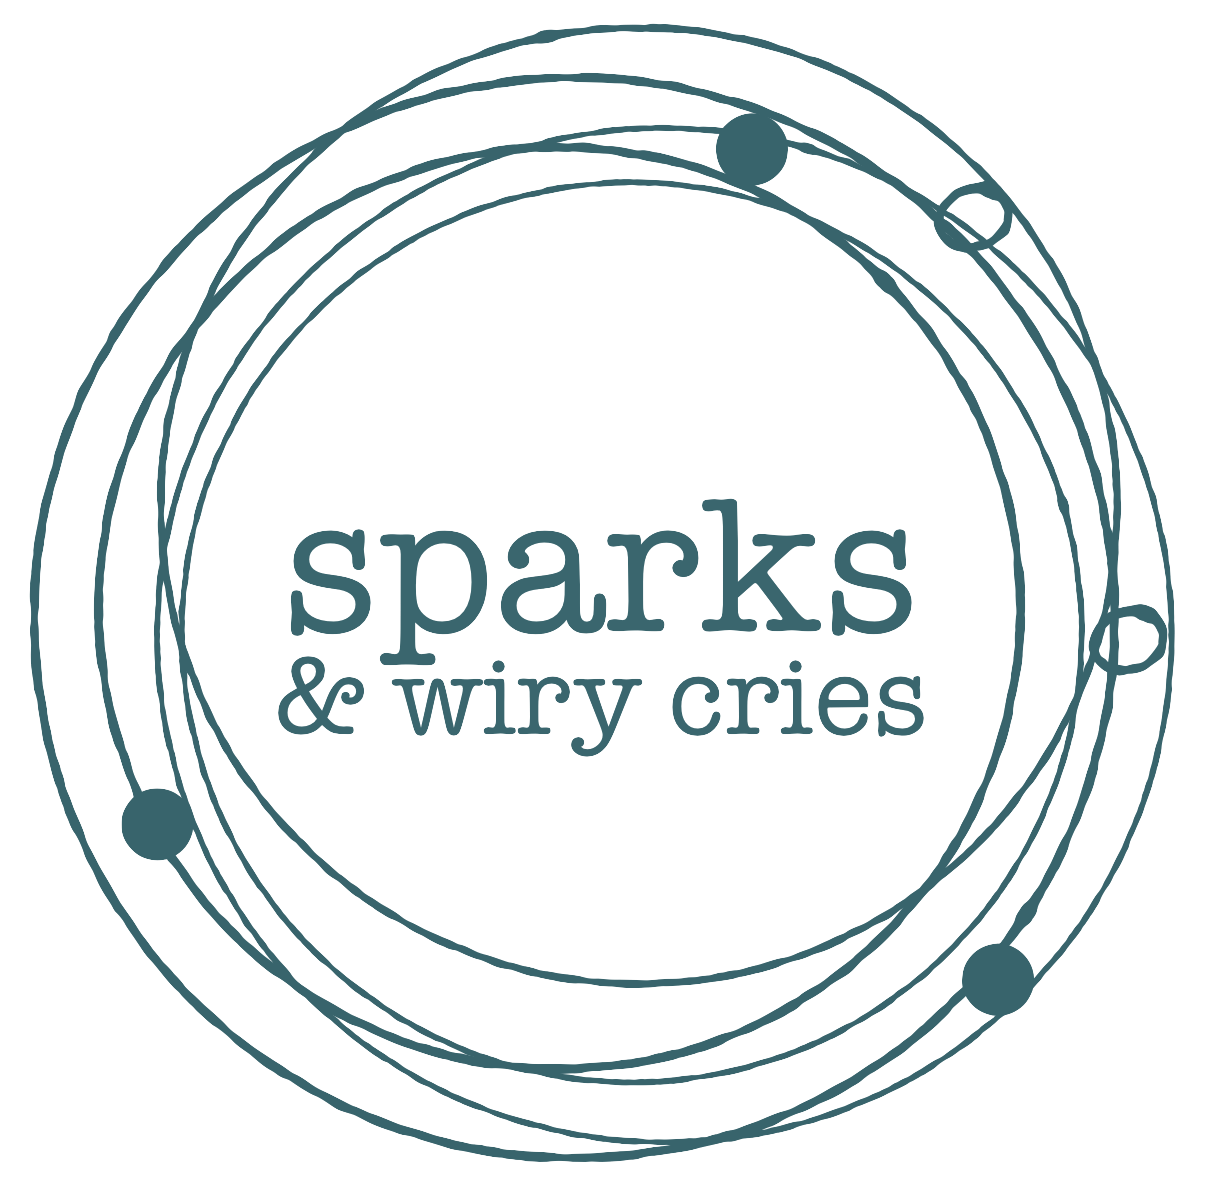 Logo Redesign: Sparks & Wiry Cries - An abstraction of sheet music creates a dynamic container for a new suite of logos for this leading-edge concert producer and art song magazine.